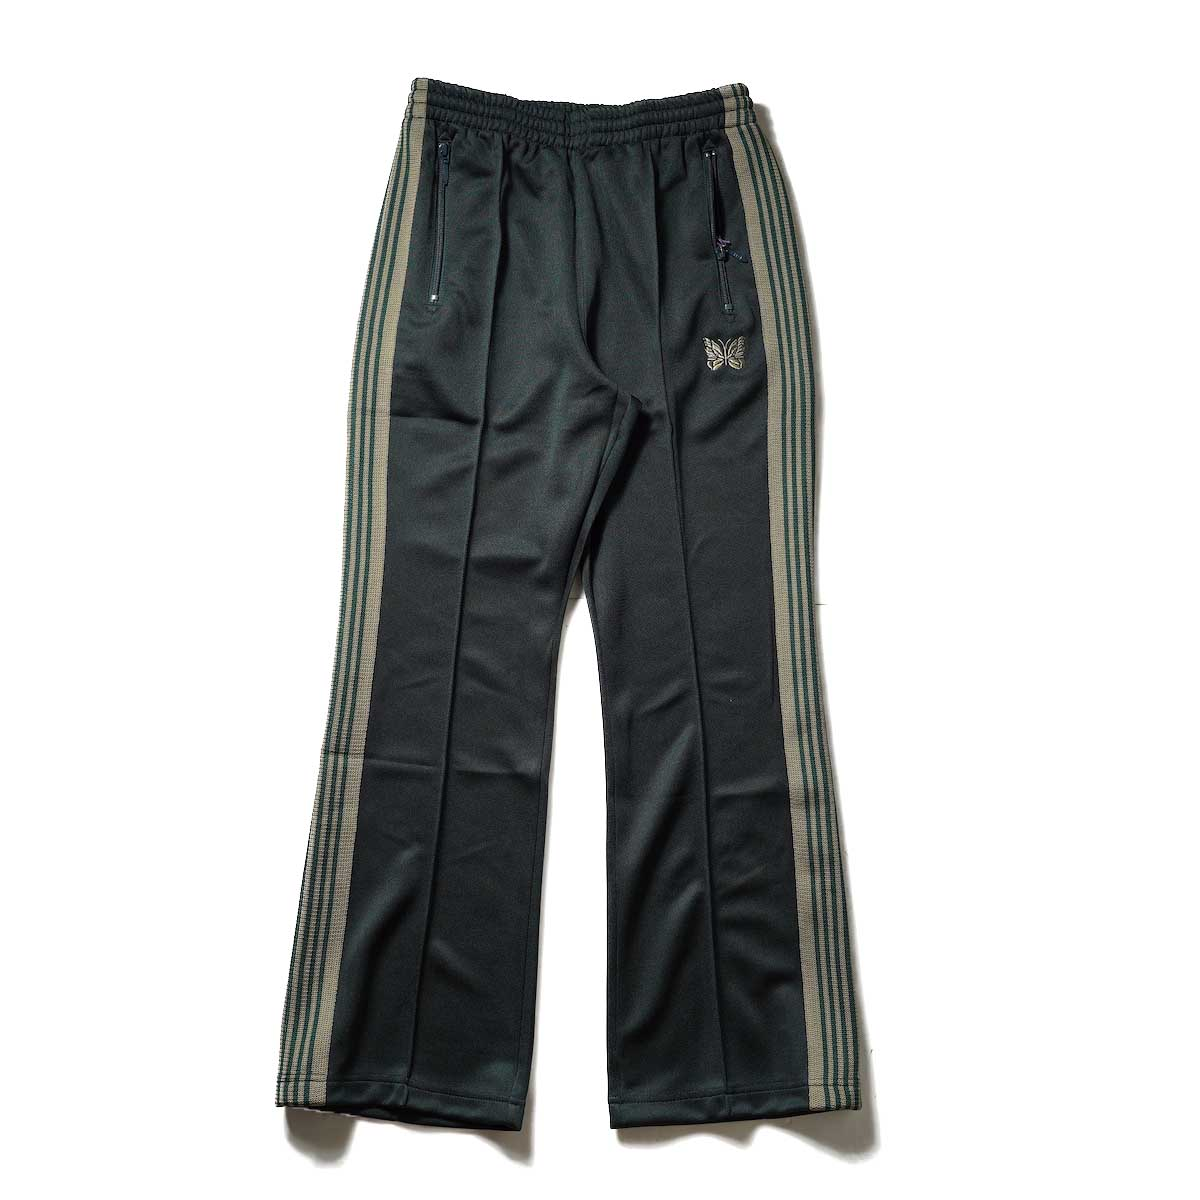 Needles / Boot-Cut Track Pant -Poly Smooth (Dk.Green)